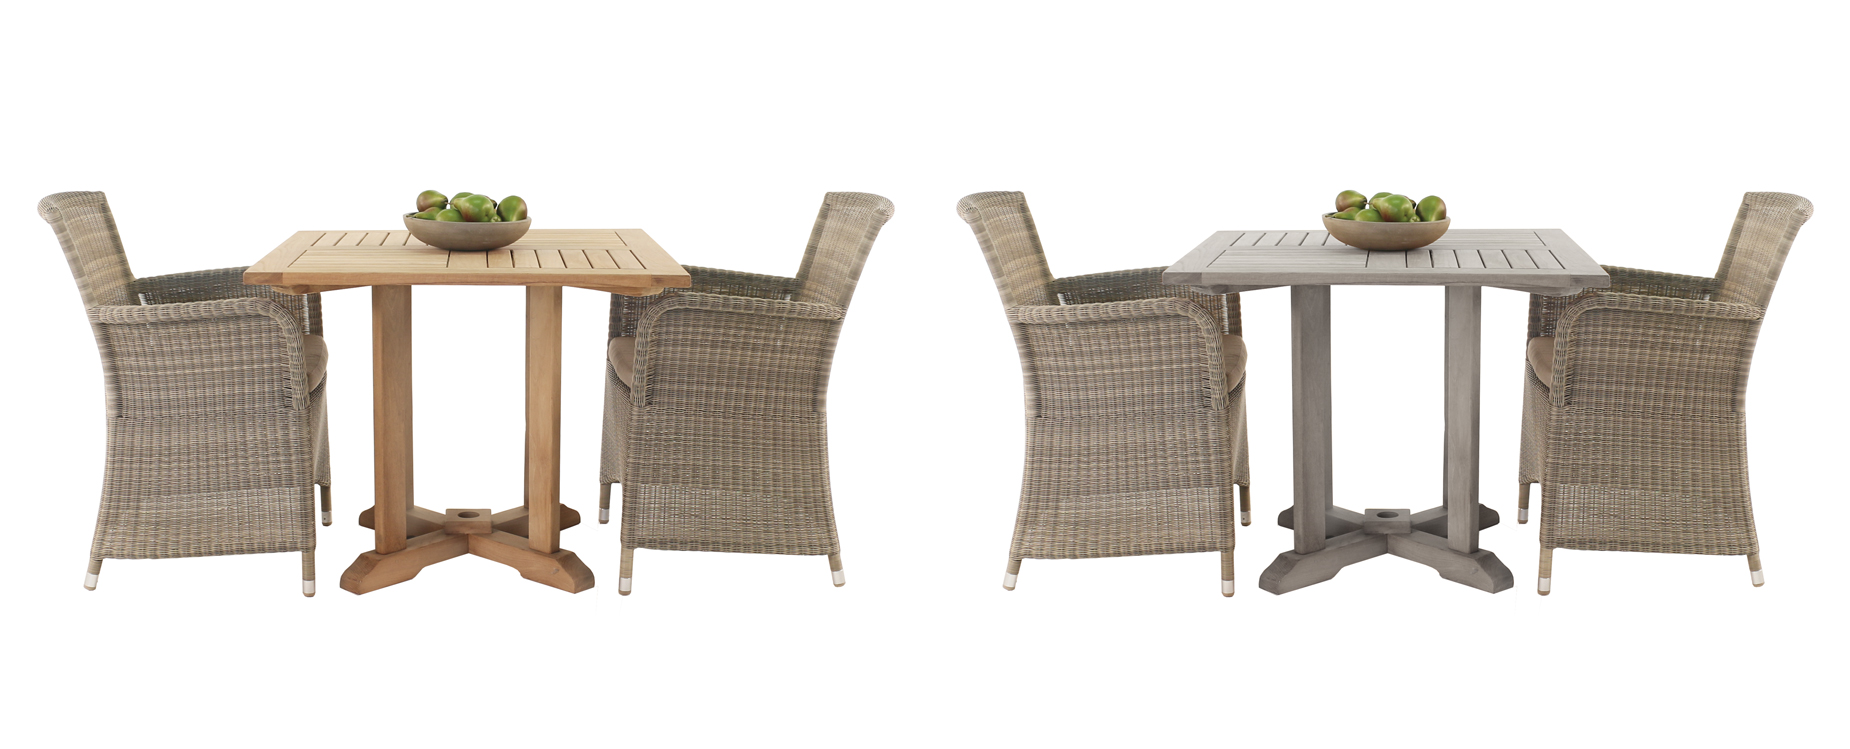 Teak Square Pedestal Dining Sets